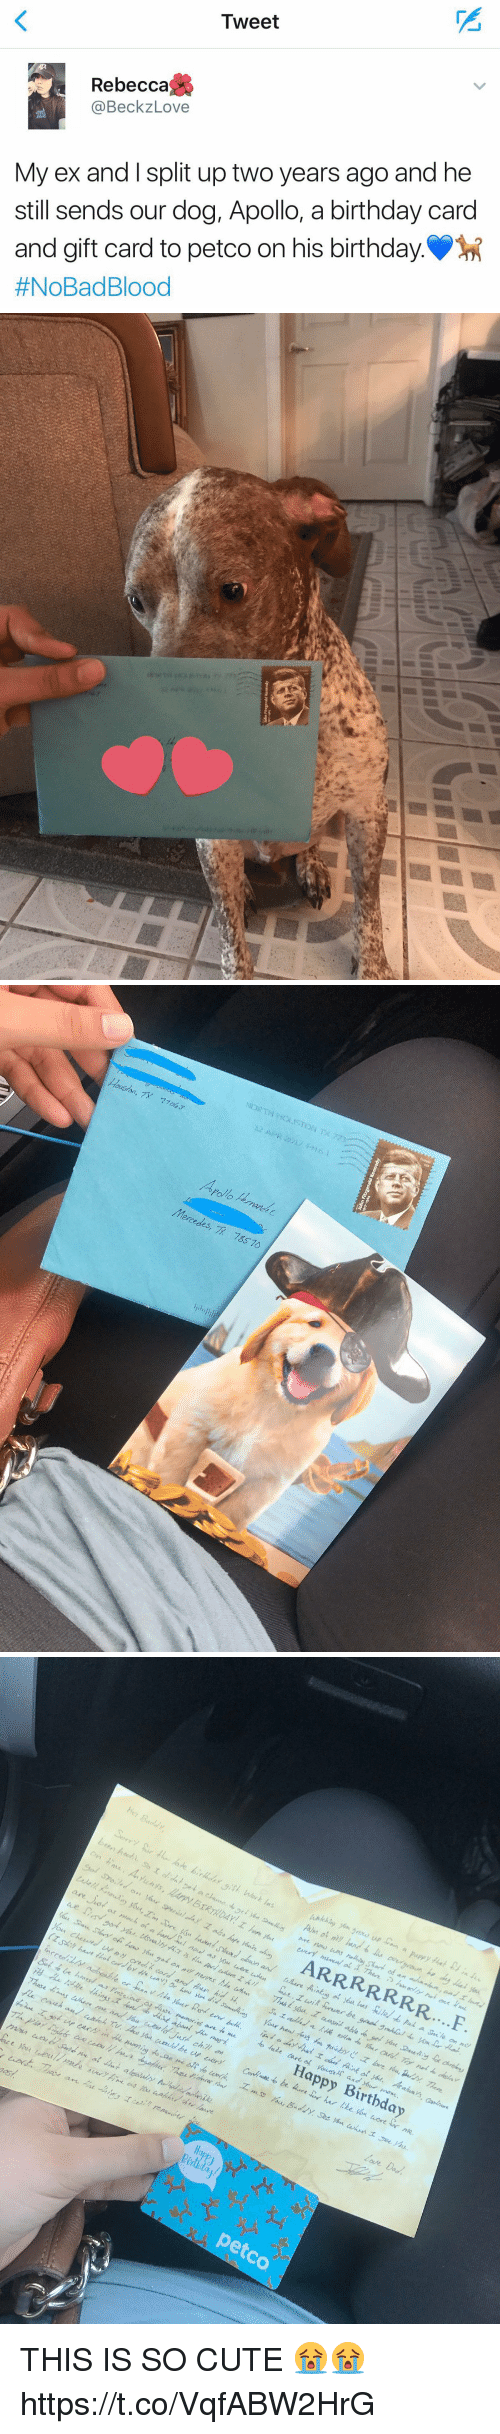 Birthday, Bloods, and Cute: Tweet  TI  Rebecca  @BeckzLove  My ex and I split up two years ago and he  still sends our dog, Apollo, a birthday card  and gift card to petco on his birthday..  #NoBad Blood   Hoston, TX  71043  Mercedes, 78570  pli   Happy Birthday  45  idar  petco THIS IS SO CUTE 😭😭 https://t.co/VqfABW2HrG